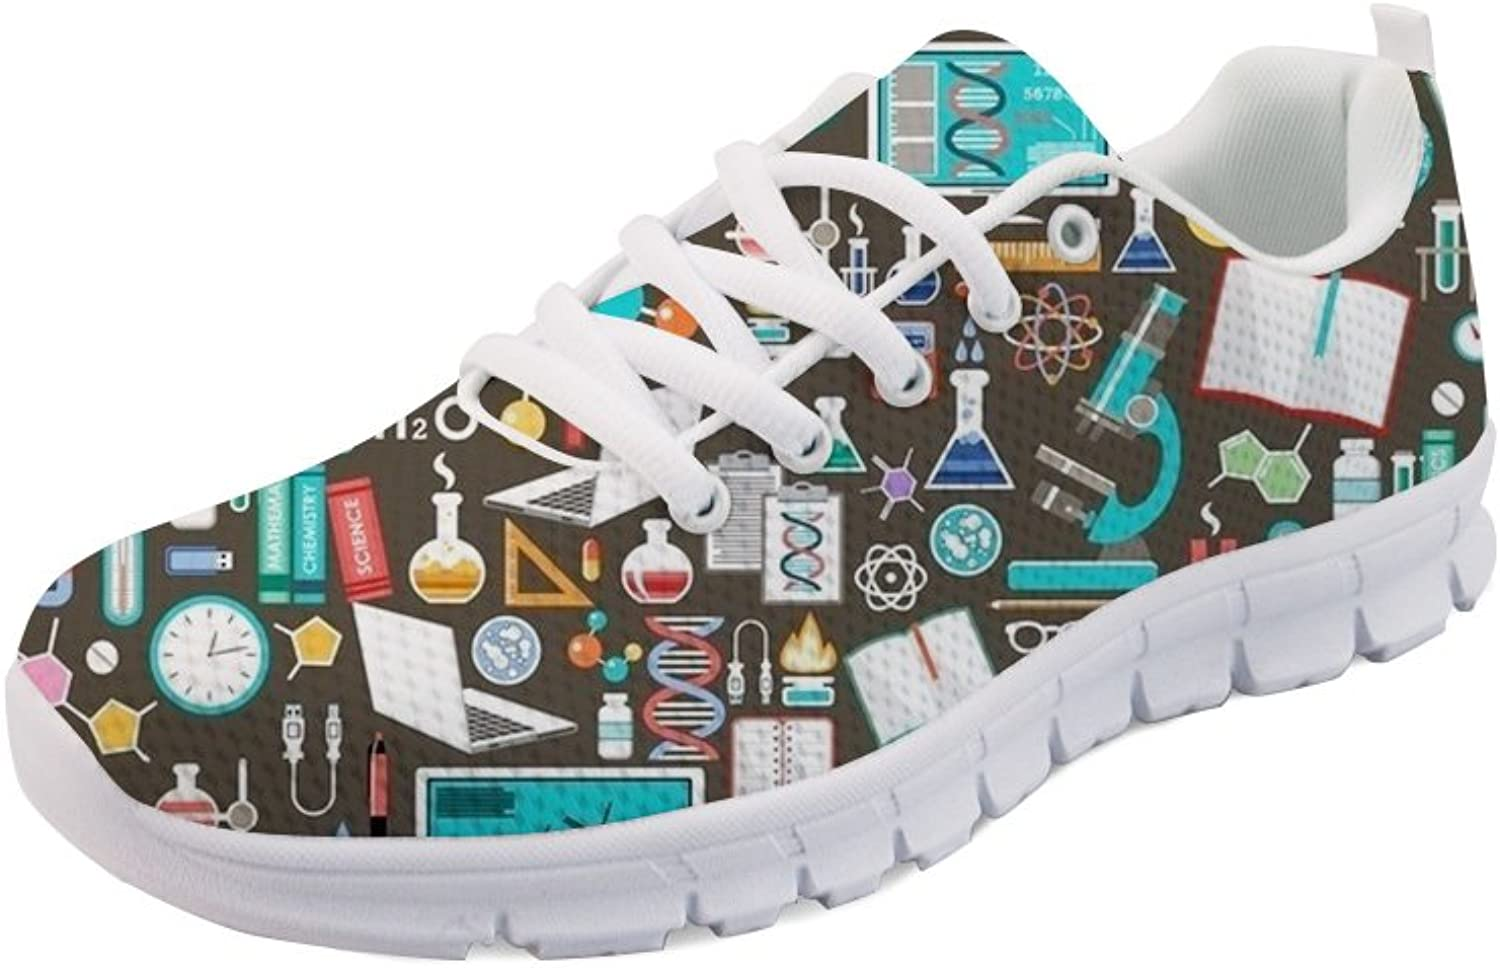 FOR U DESIGNS Women Men Mesh Breathable Sneakers Casual Walking Laces Tie-up shoes Cartoon Printed Flats